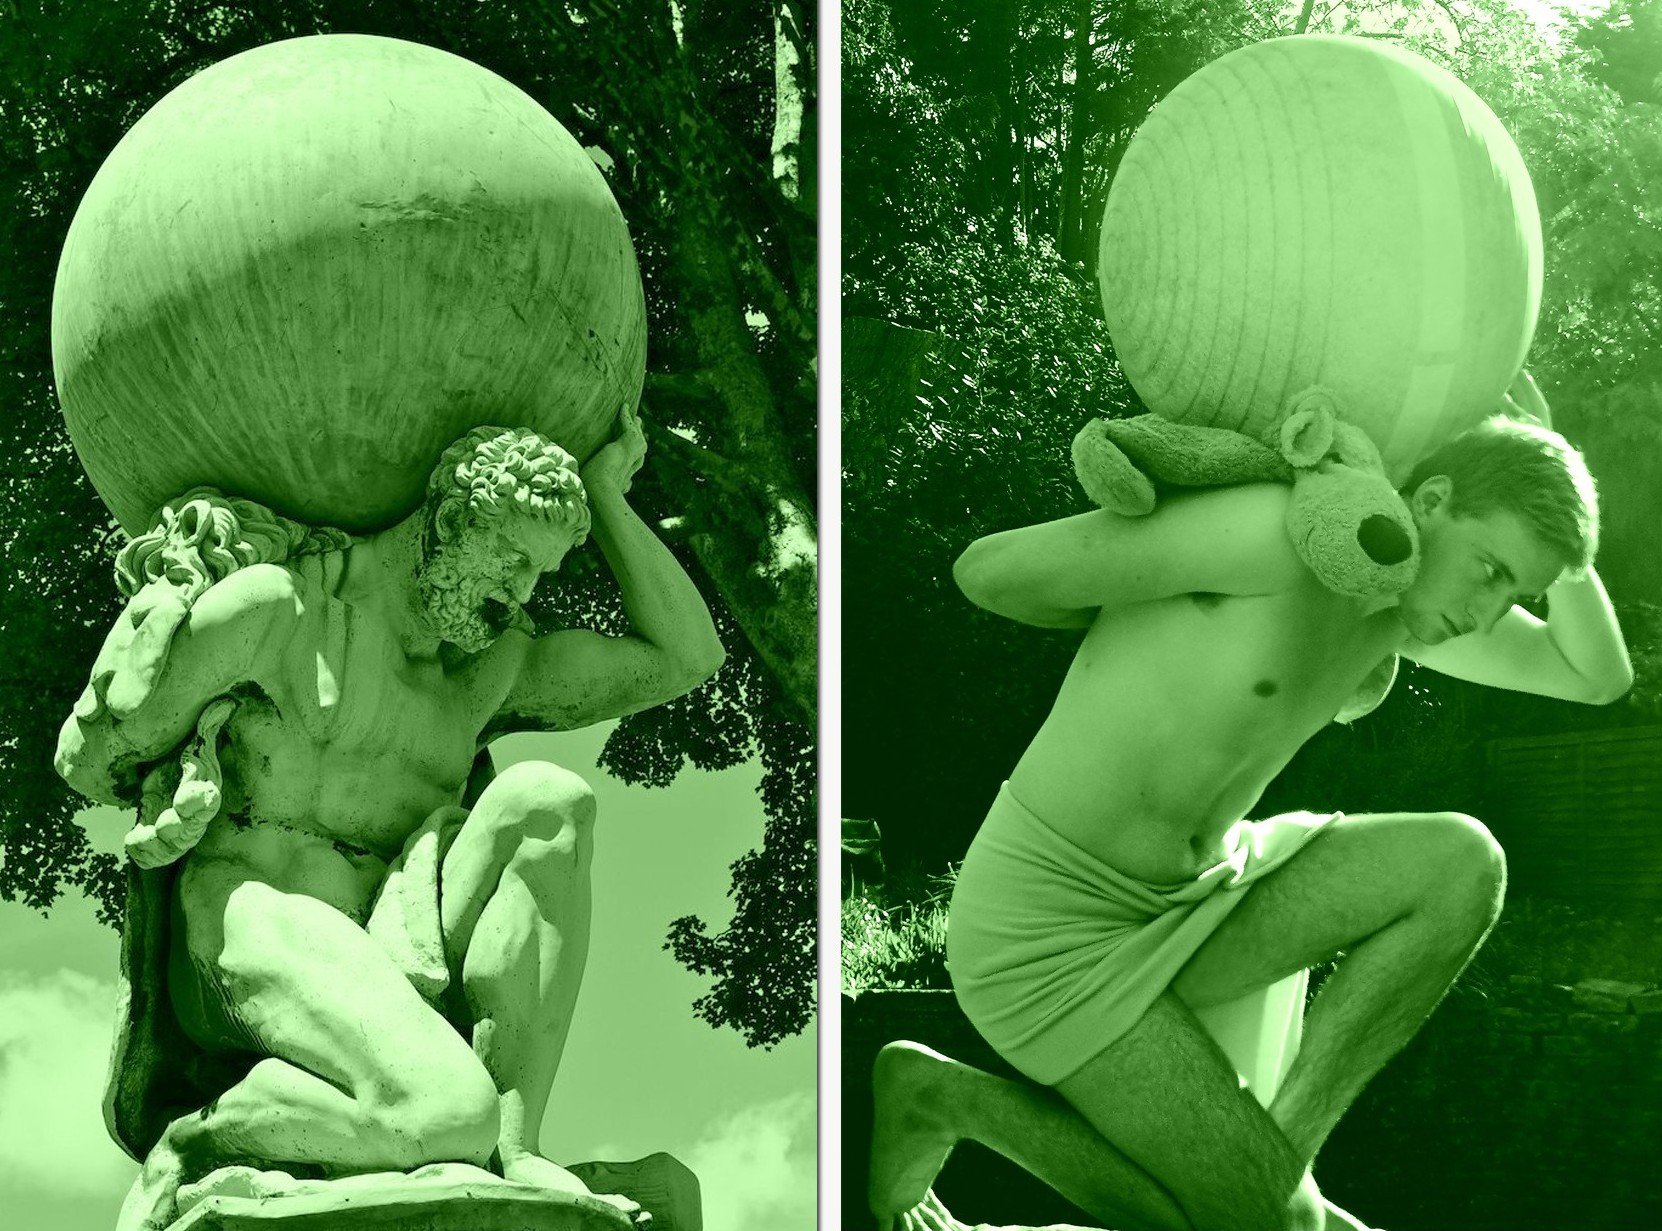 Statue of Hercules Carrying the World / Statue of Aidan Carrying the Yoga Ball